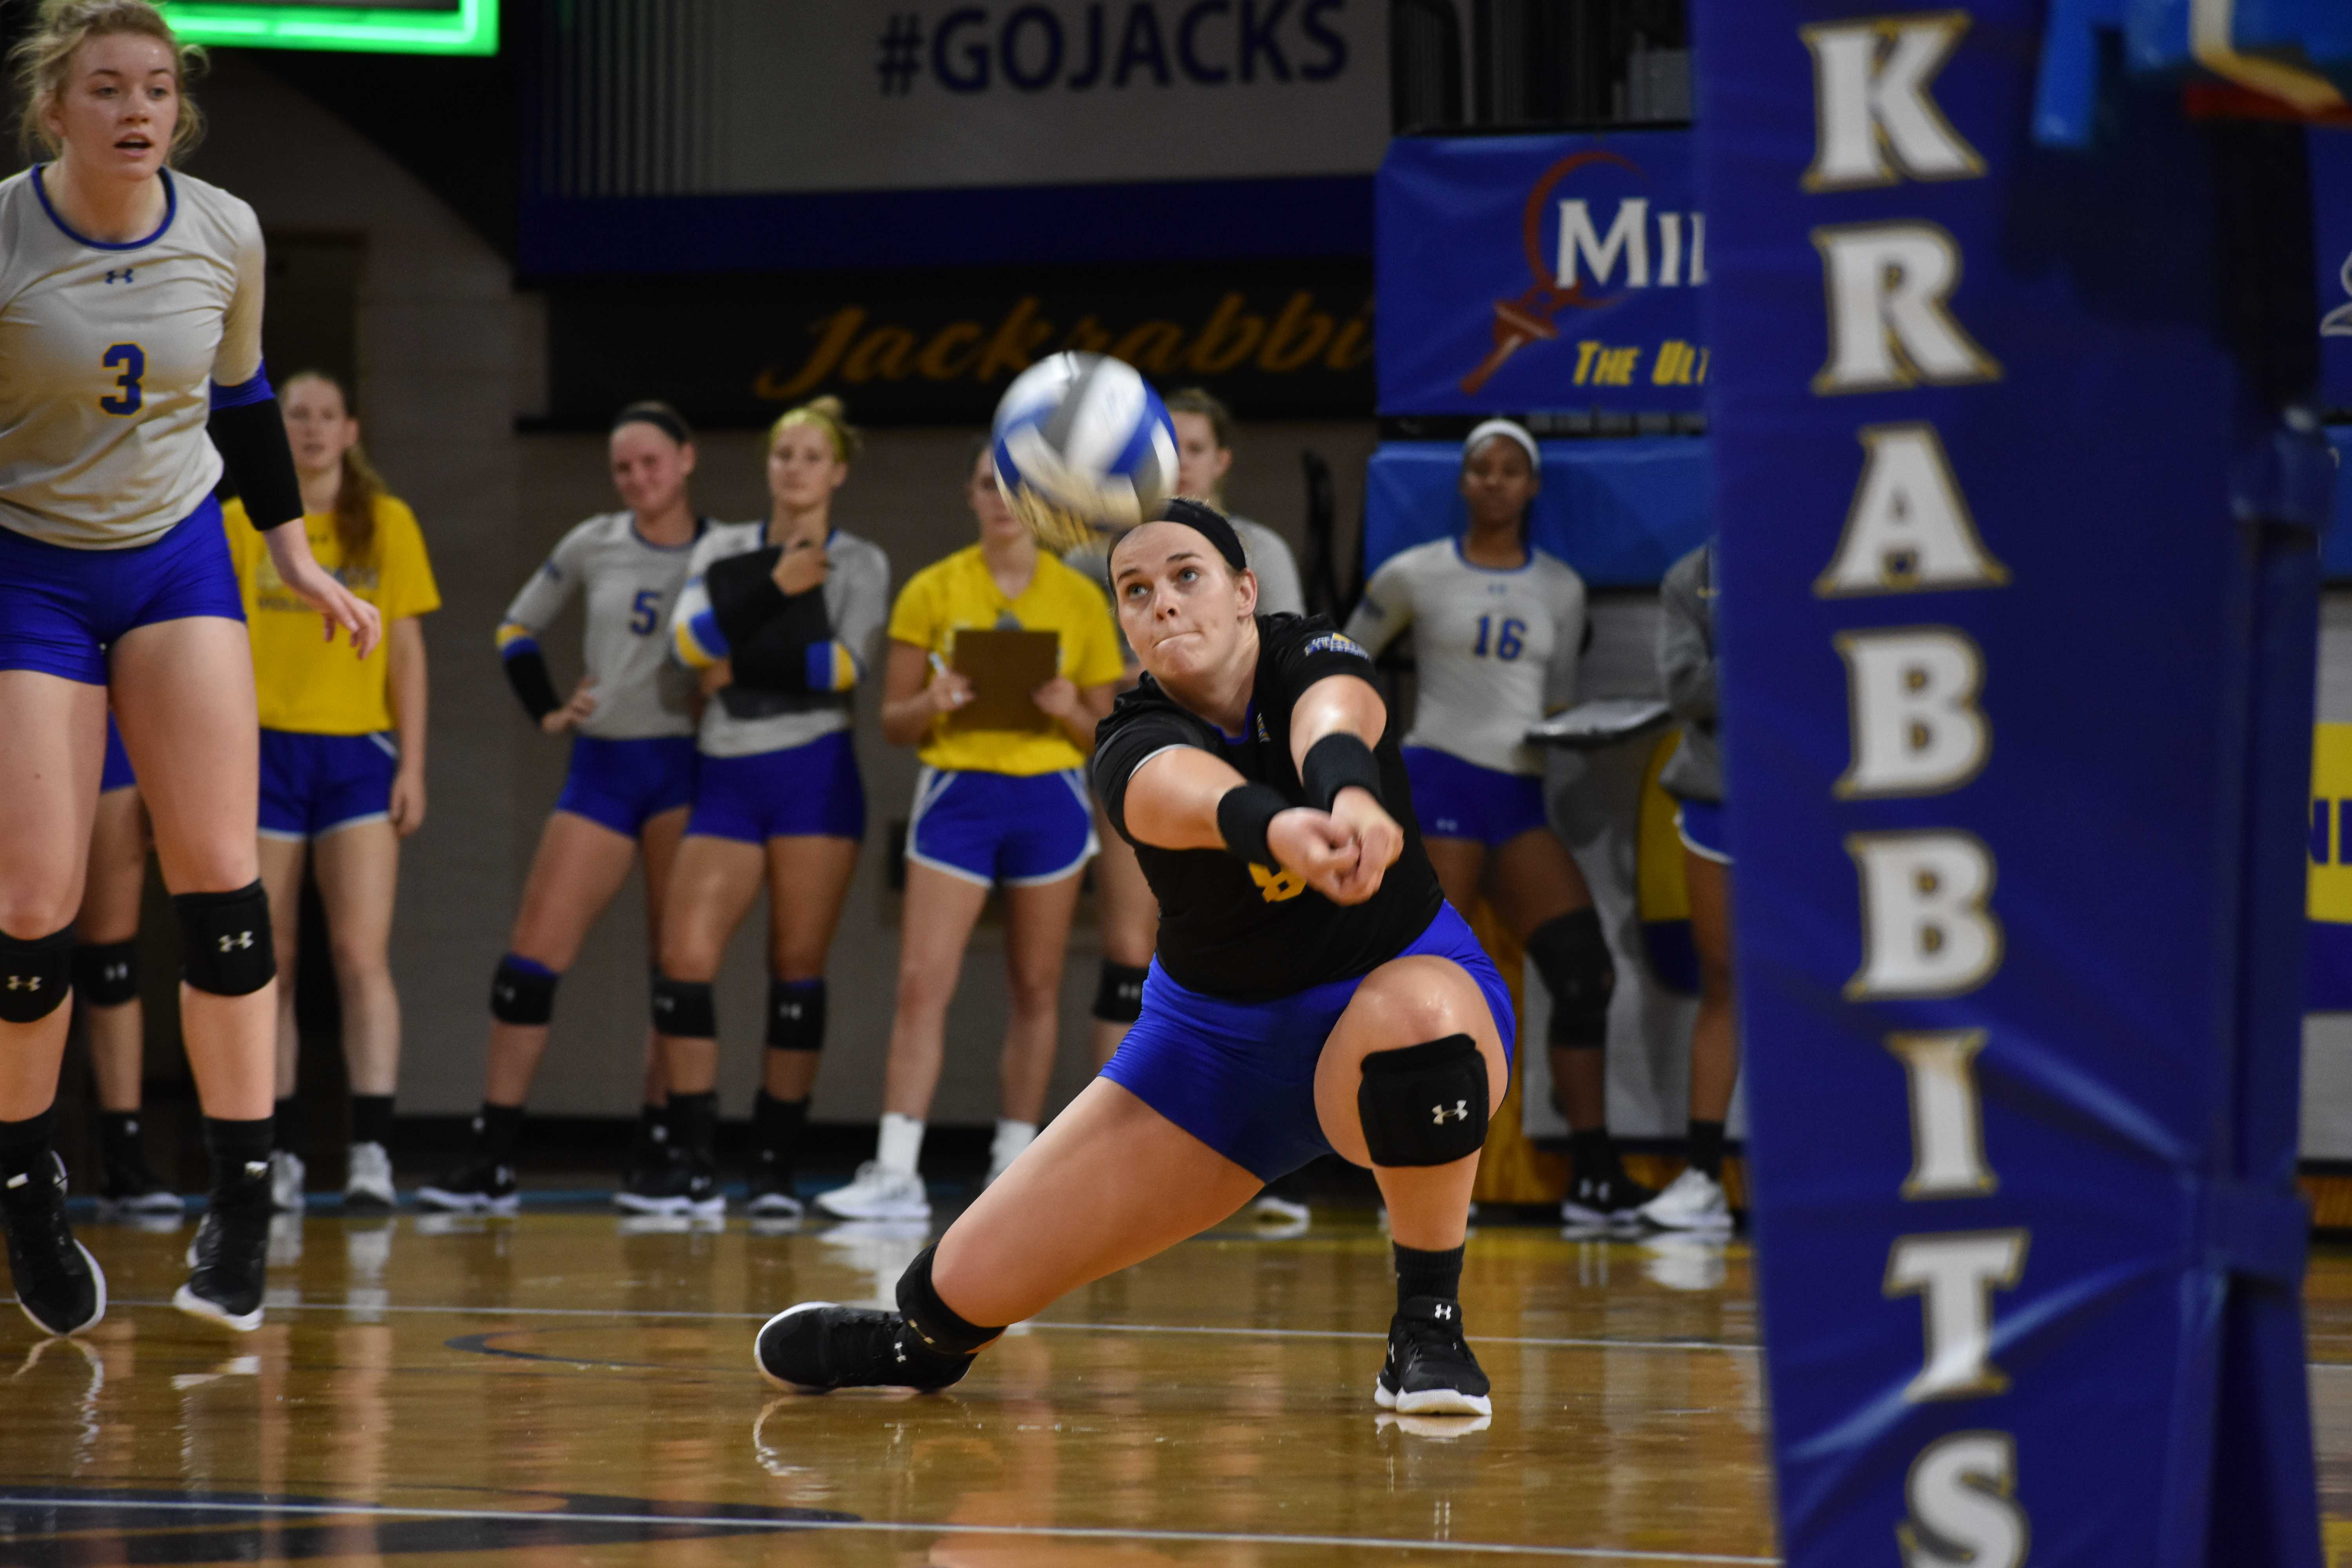 ABBY FULLENKAMP The South Dakota State volleyball team is still in rebuilding mode during head coach Nicole Cirillo's third season. The Jacks are currently 2-19 and want to use the rest of the season to learn for next year.